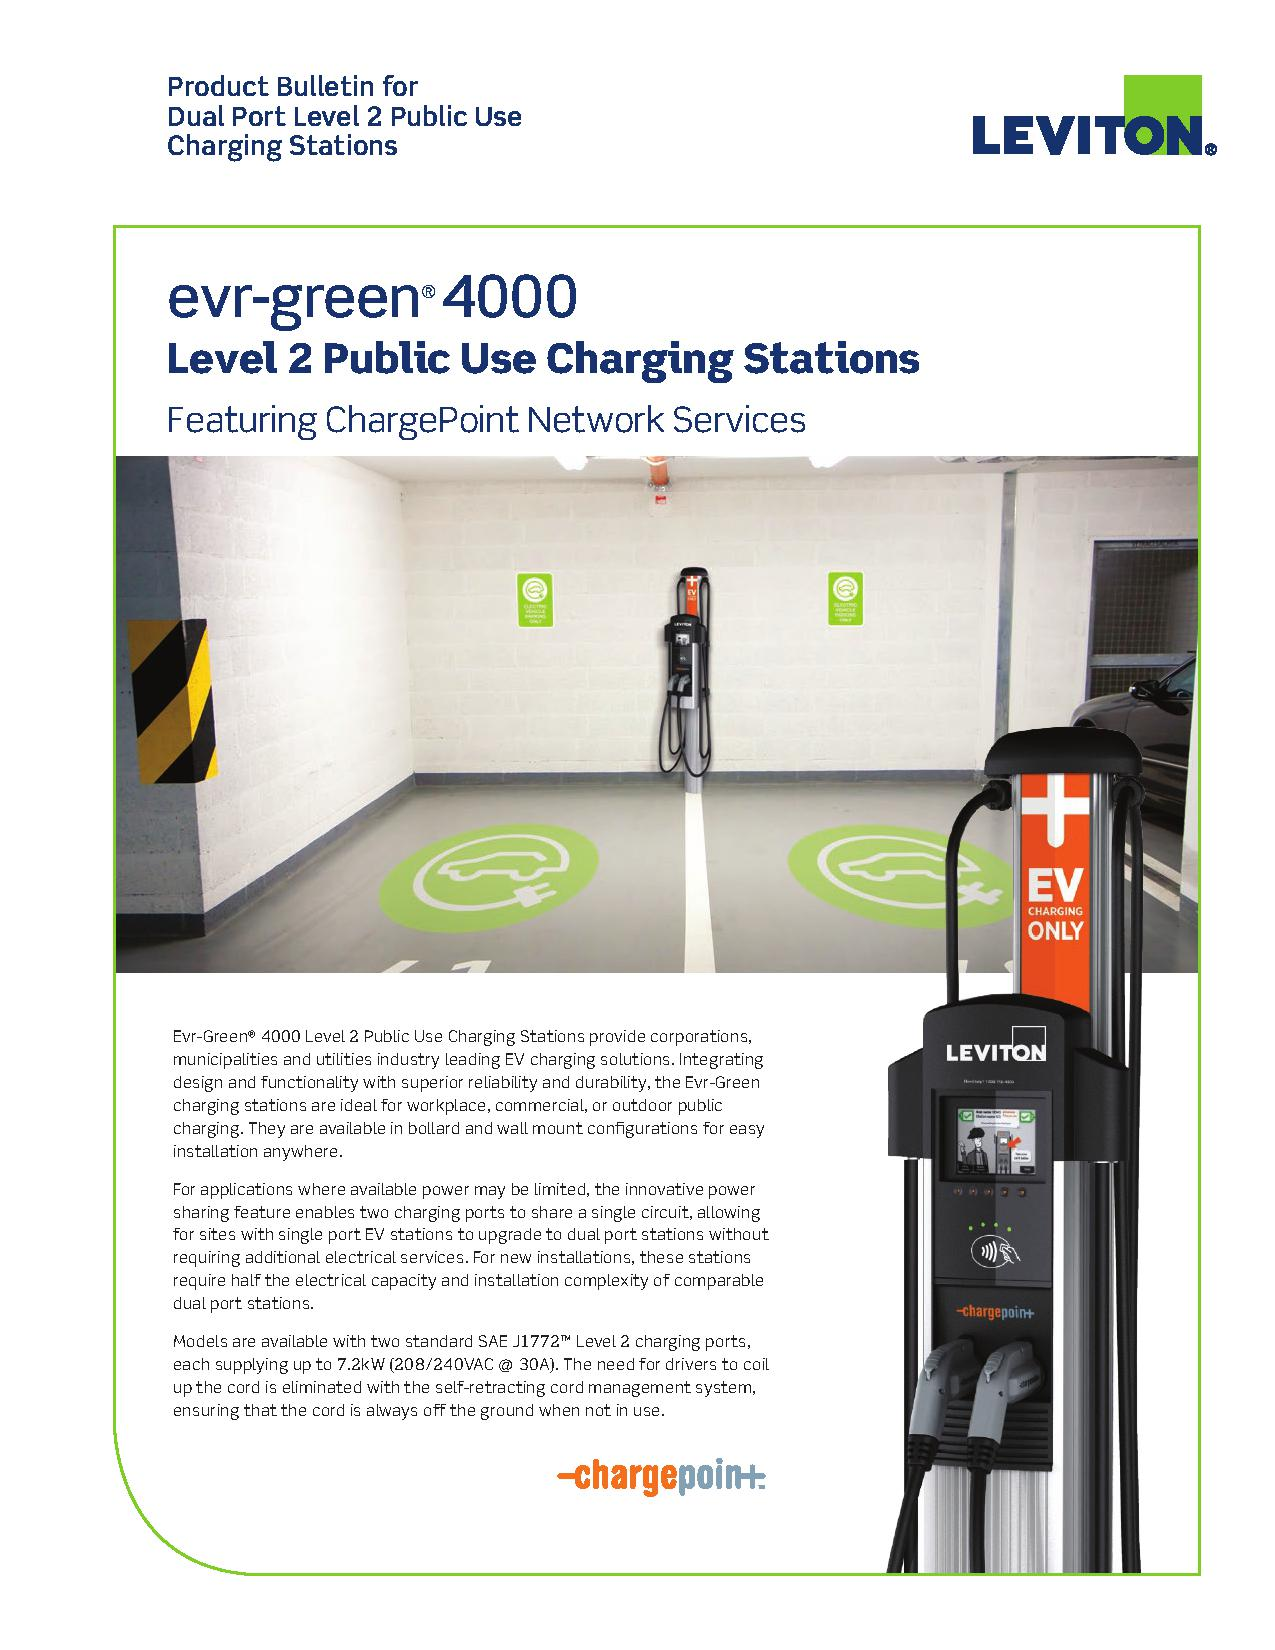 Leviton Evr-Green® 4000 Level 2 Public Use Charging Stations | AJB Sales